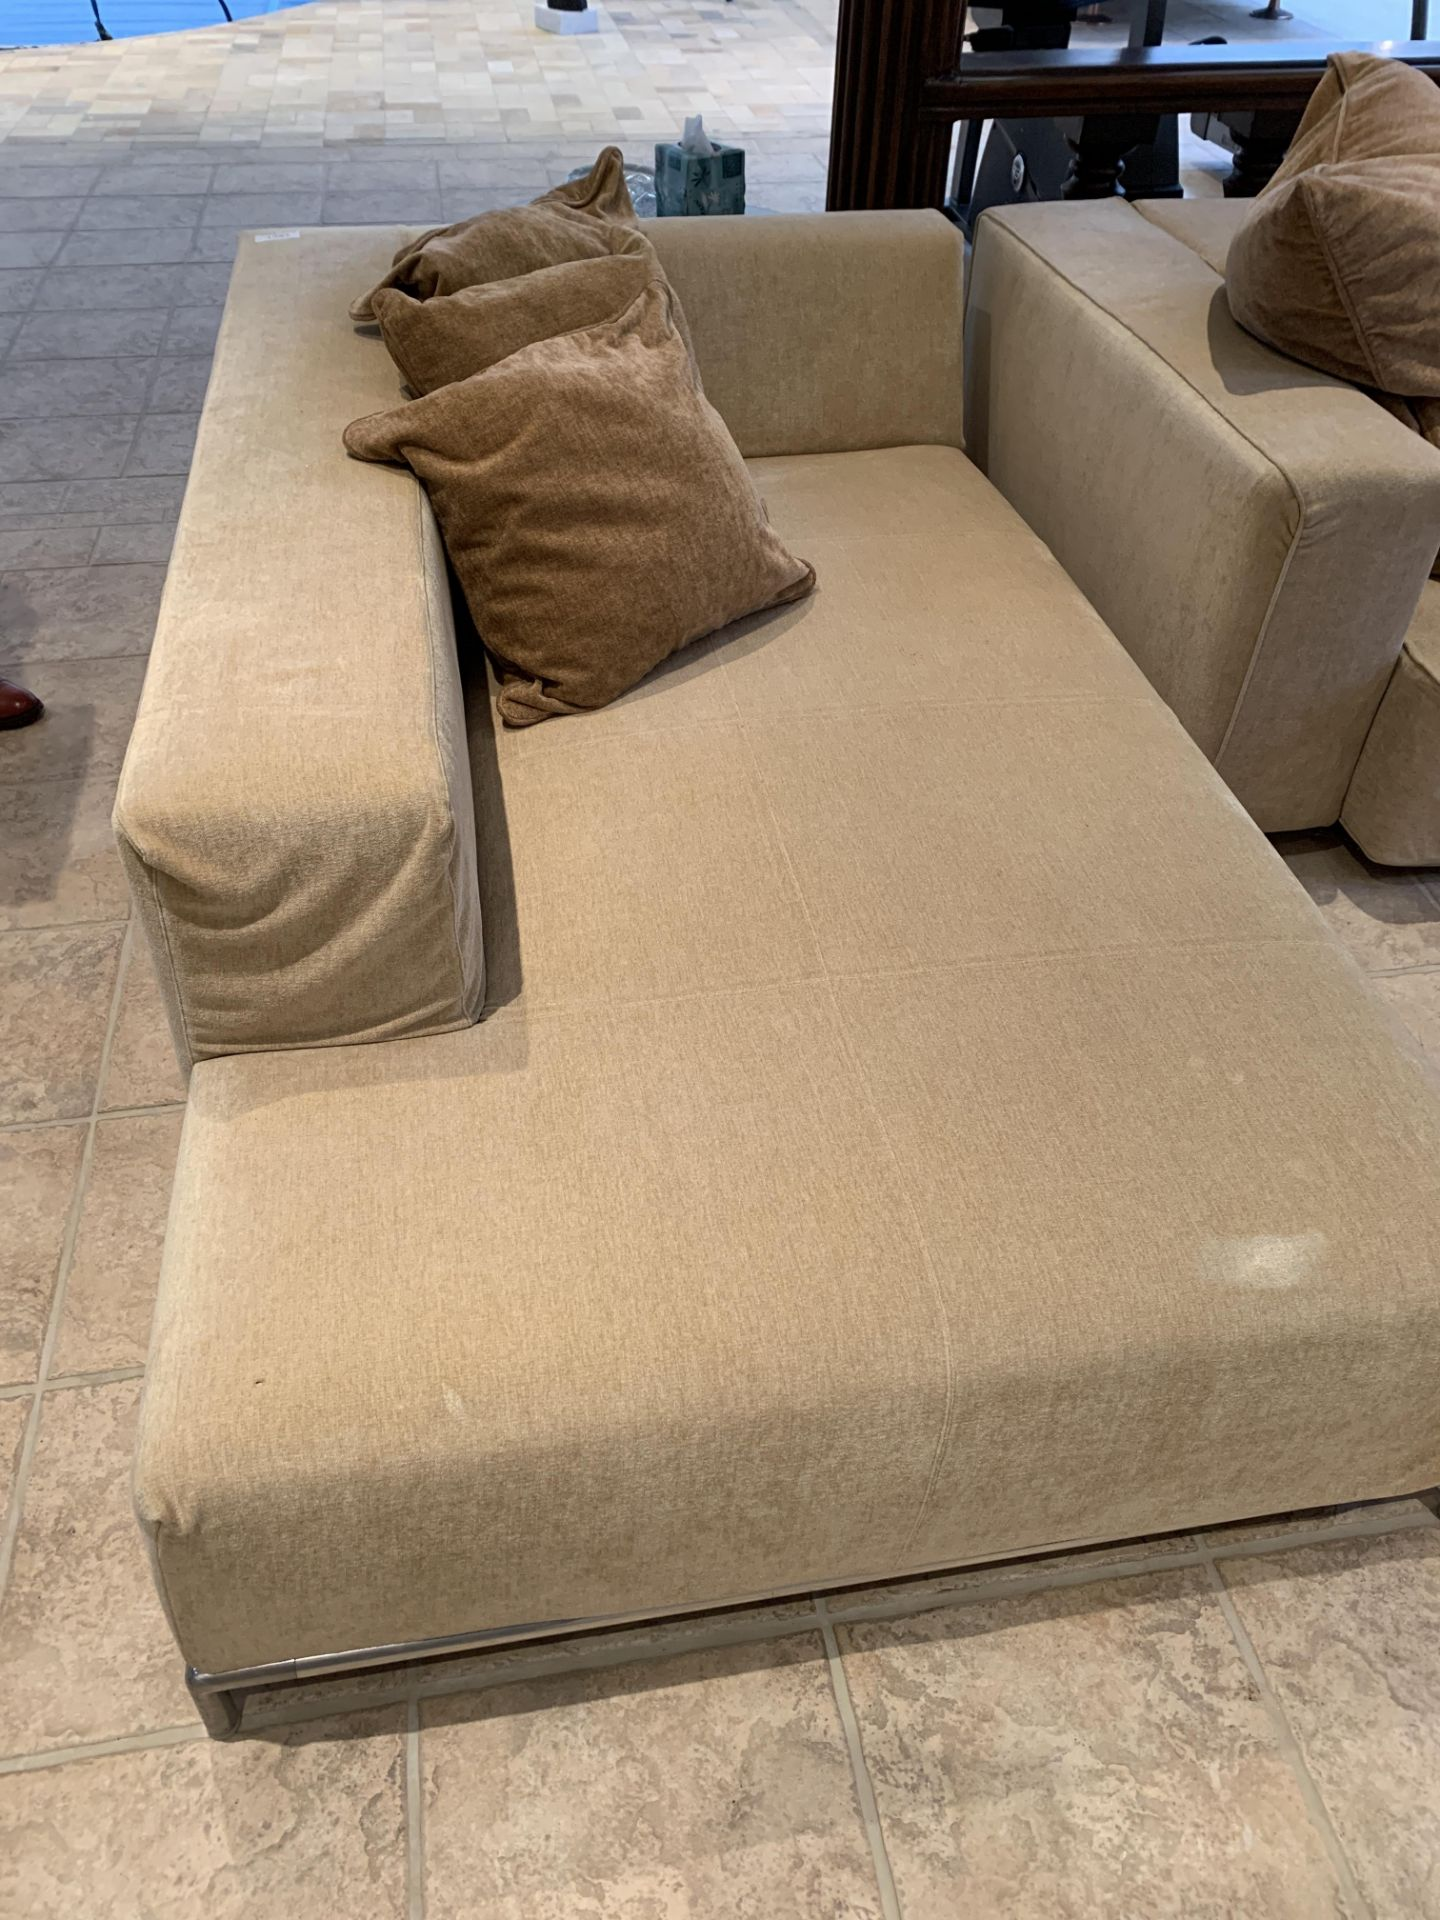 Light brown sofa, a light brown day bed, light brown floor cushion and a rattan stool - Image 4 of 5